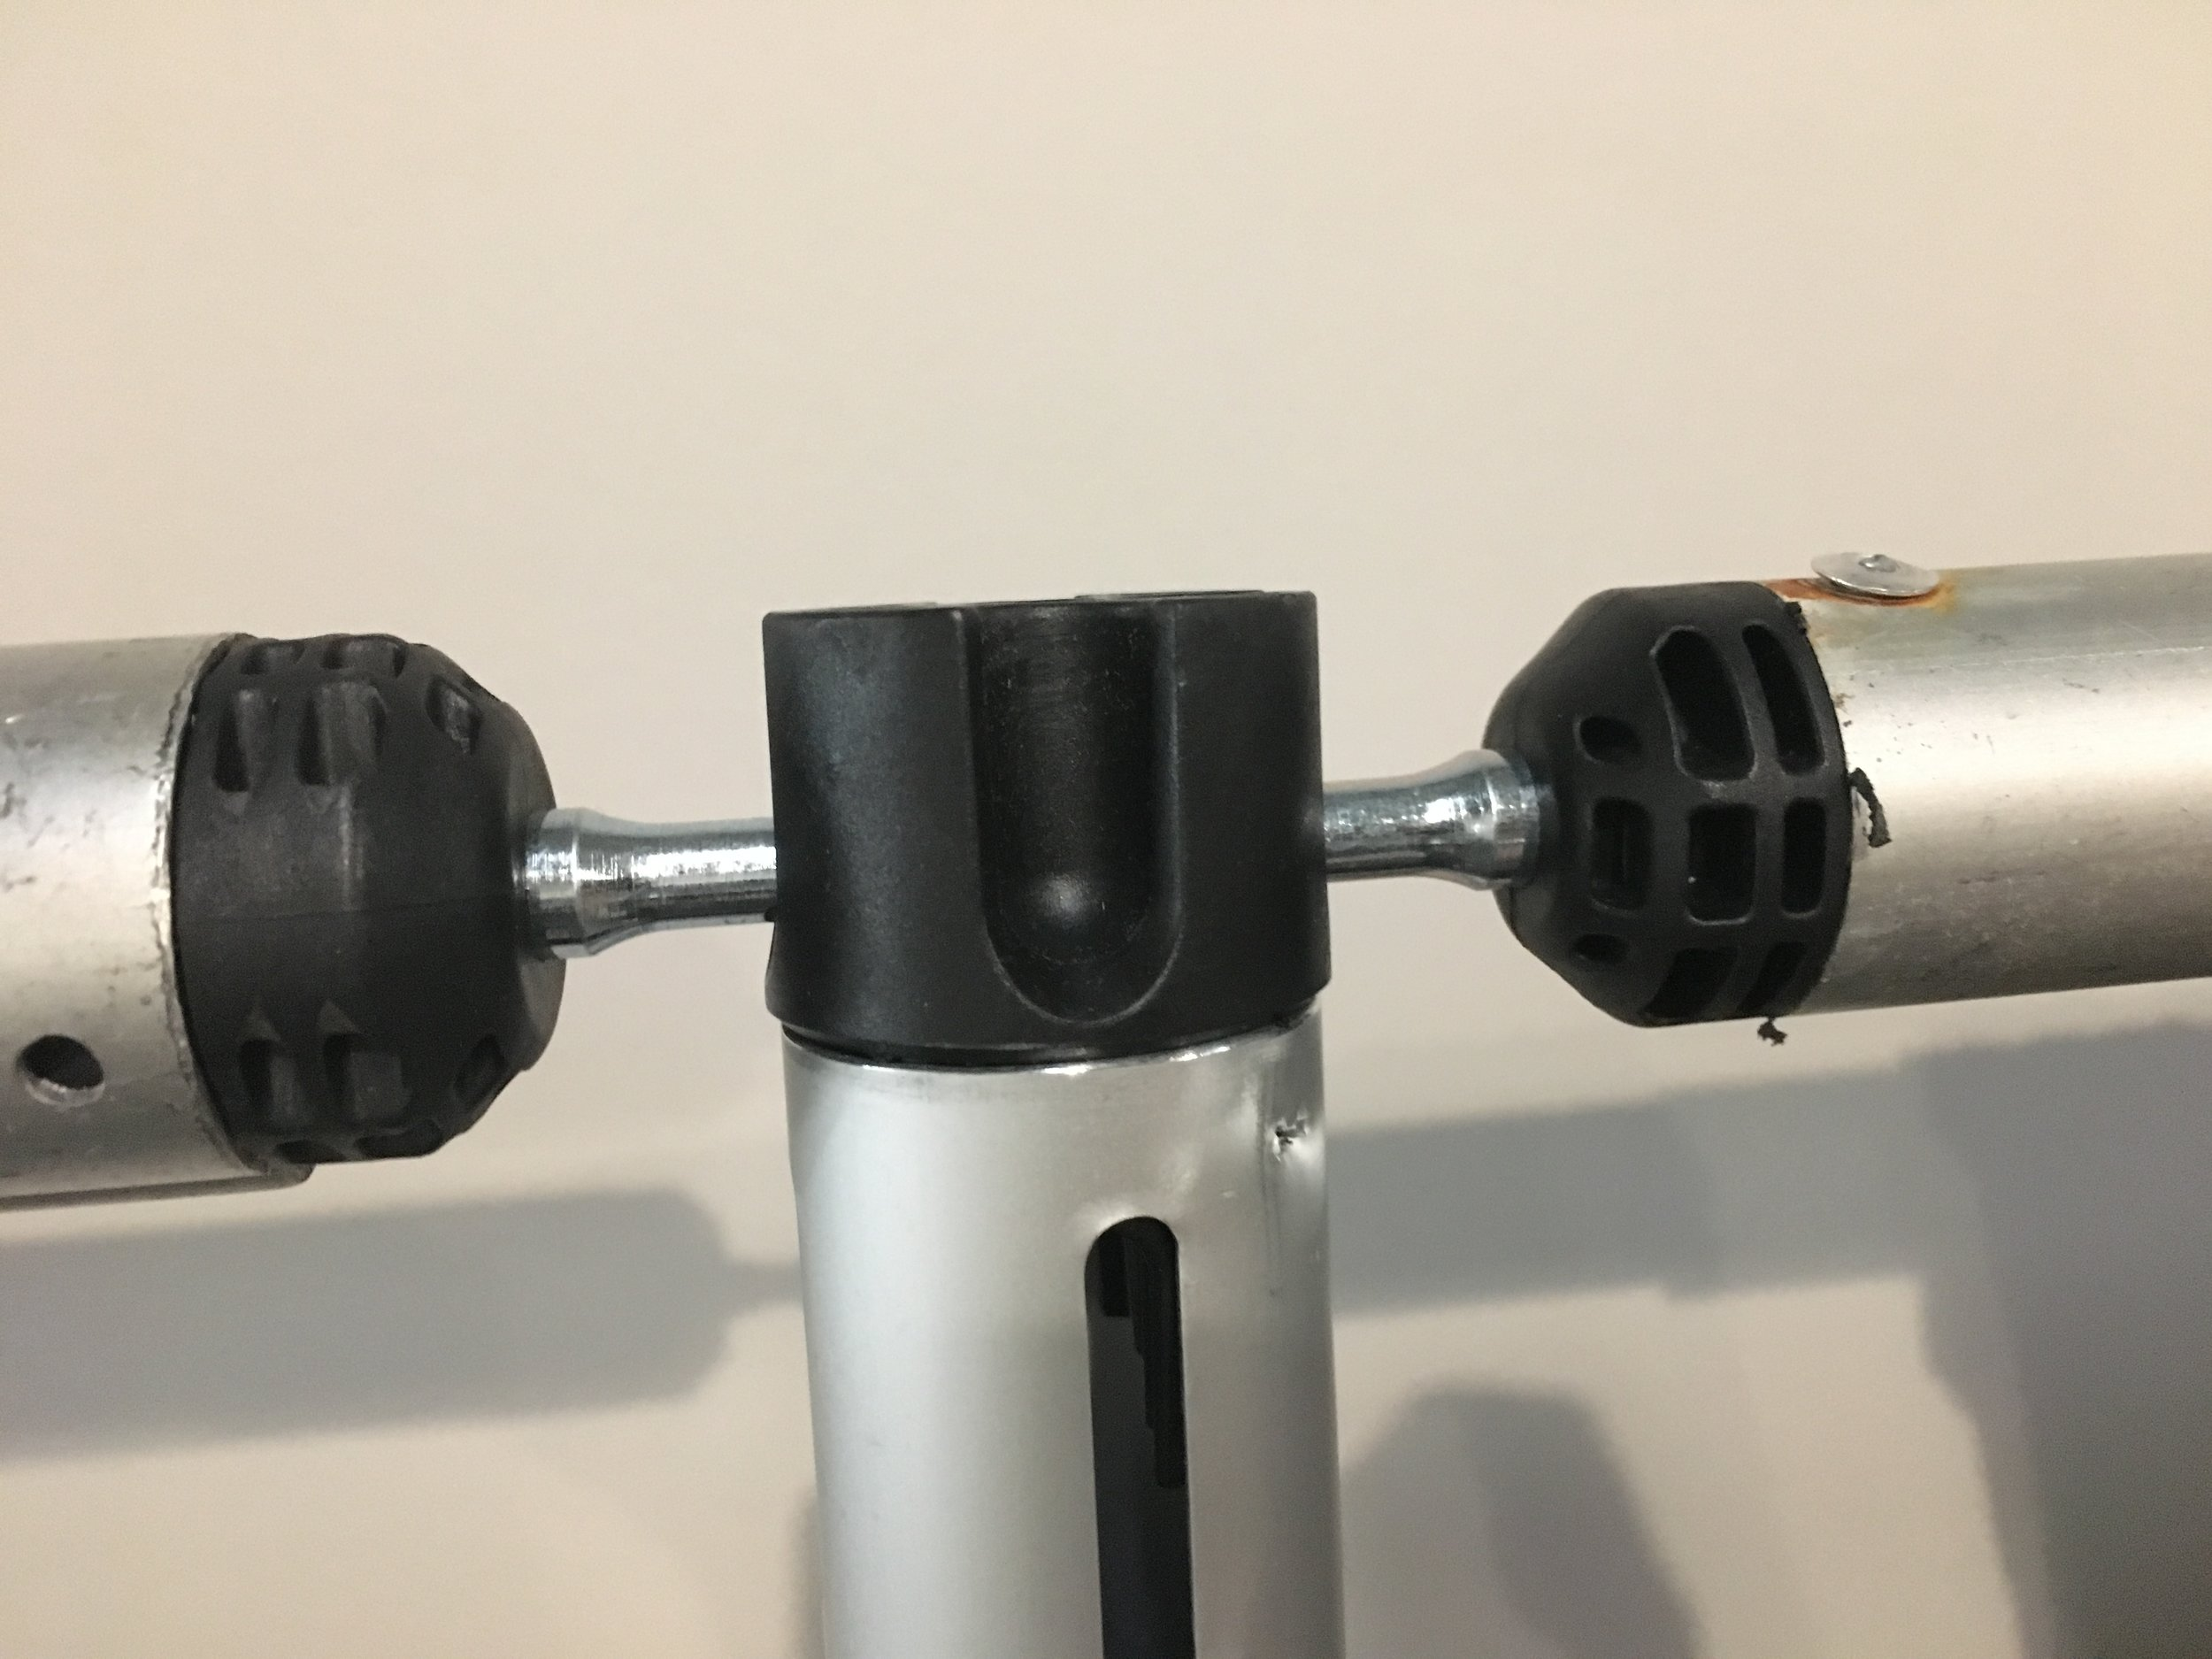 New ball and joint system.